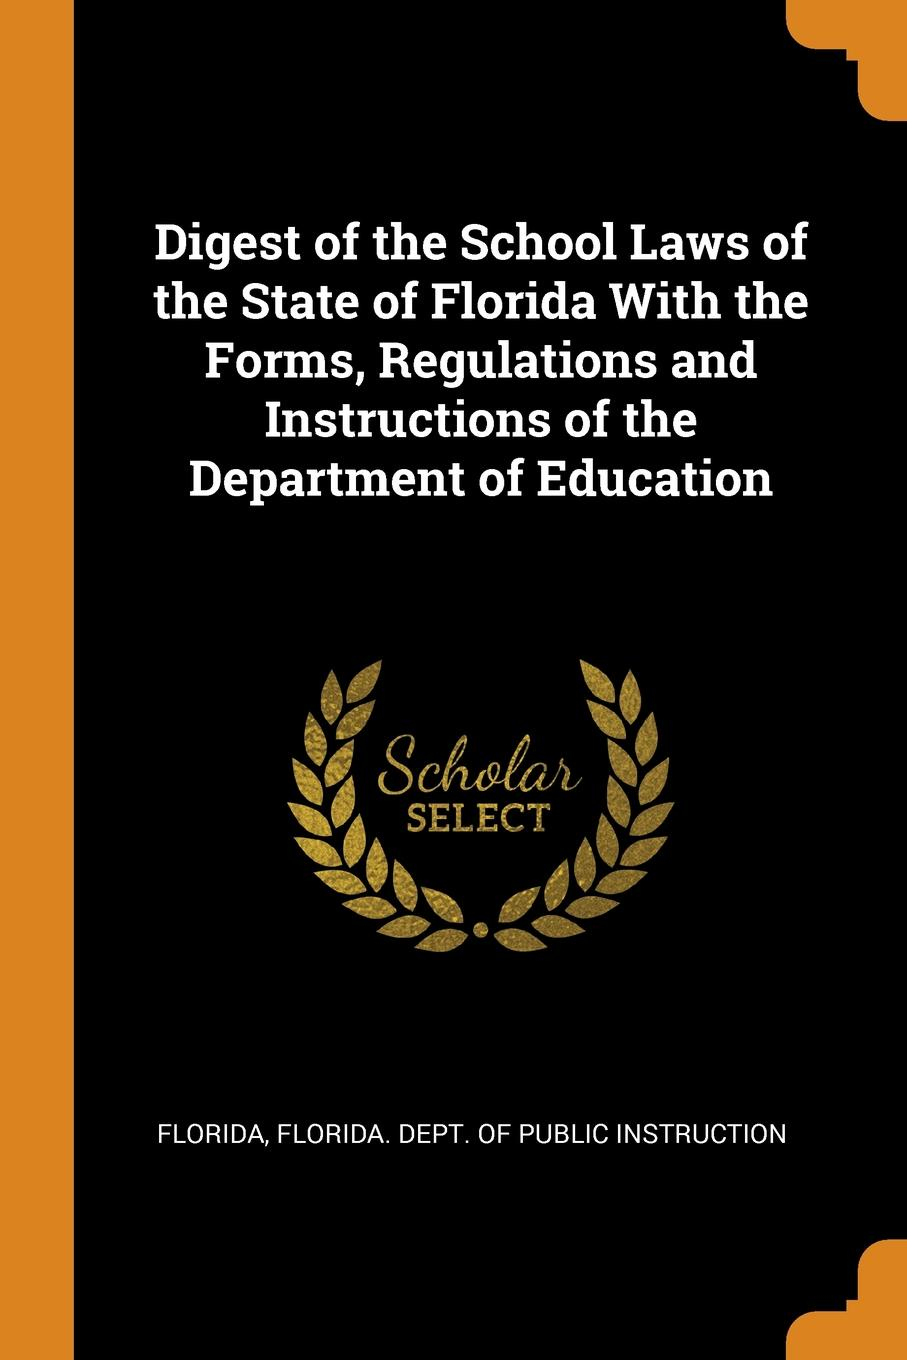 Digest of the School Laws of the State of Florida With the Forms, Regulations and Instructions of the Department of Education. Florida